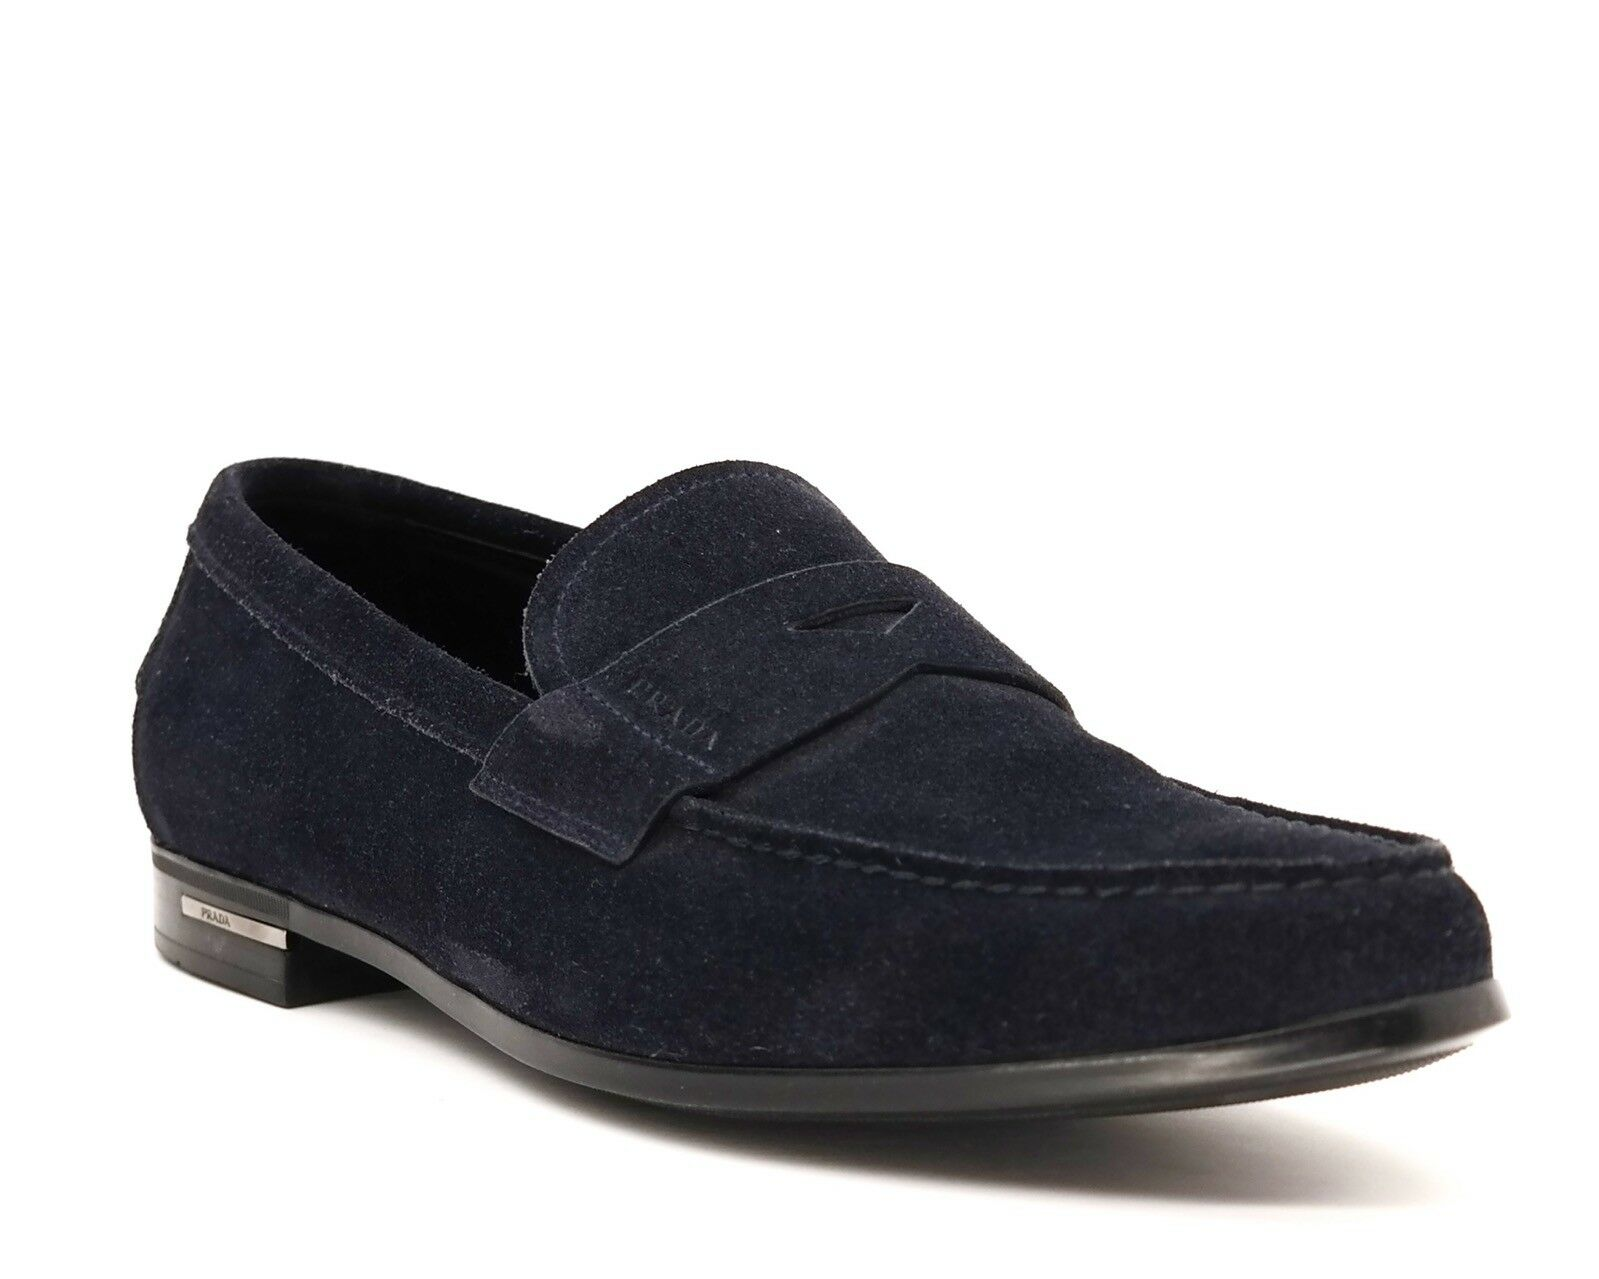 Prada Loafers Slip On Shoes Navy Blue Suede Size 8.5 NIB